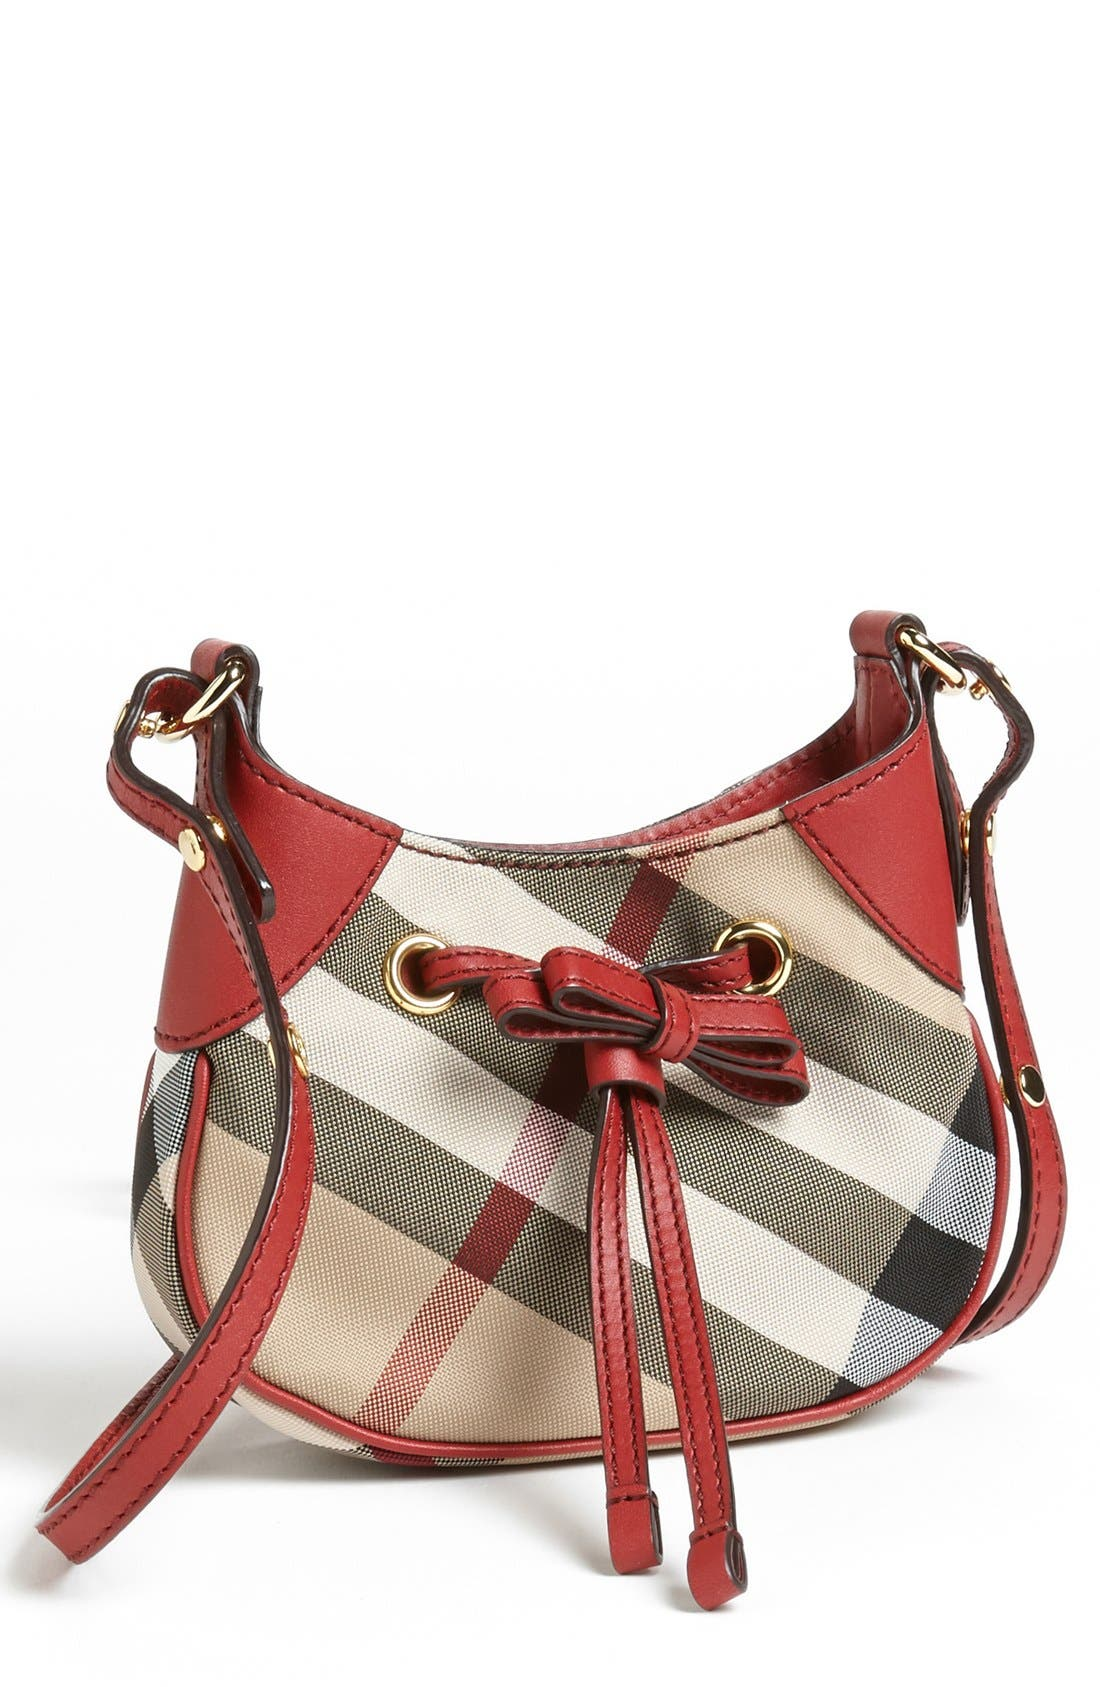 BURBERRY Crossbody Bag, Main, color, 609